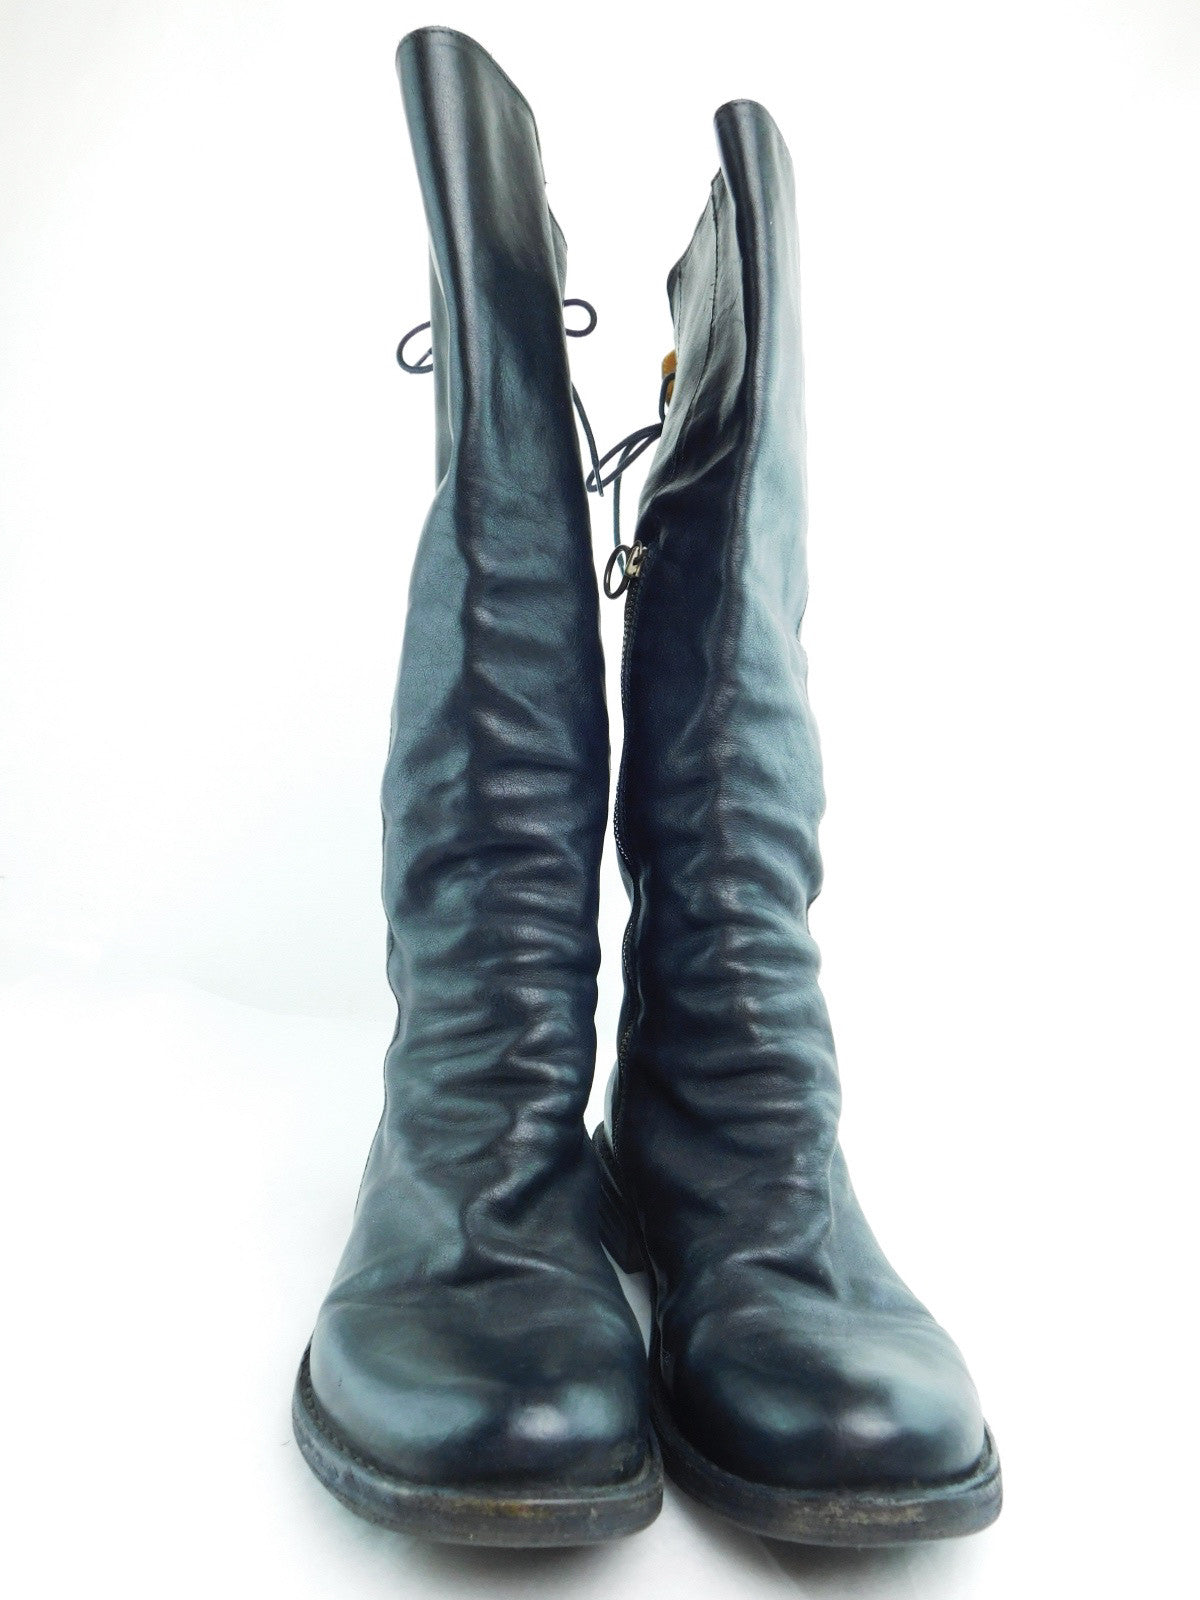 Fiorentini + Baker Black Leather Lace Up Knee High Boots, Size 38/US 7.5